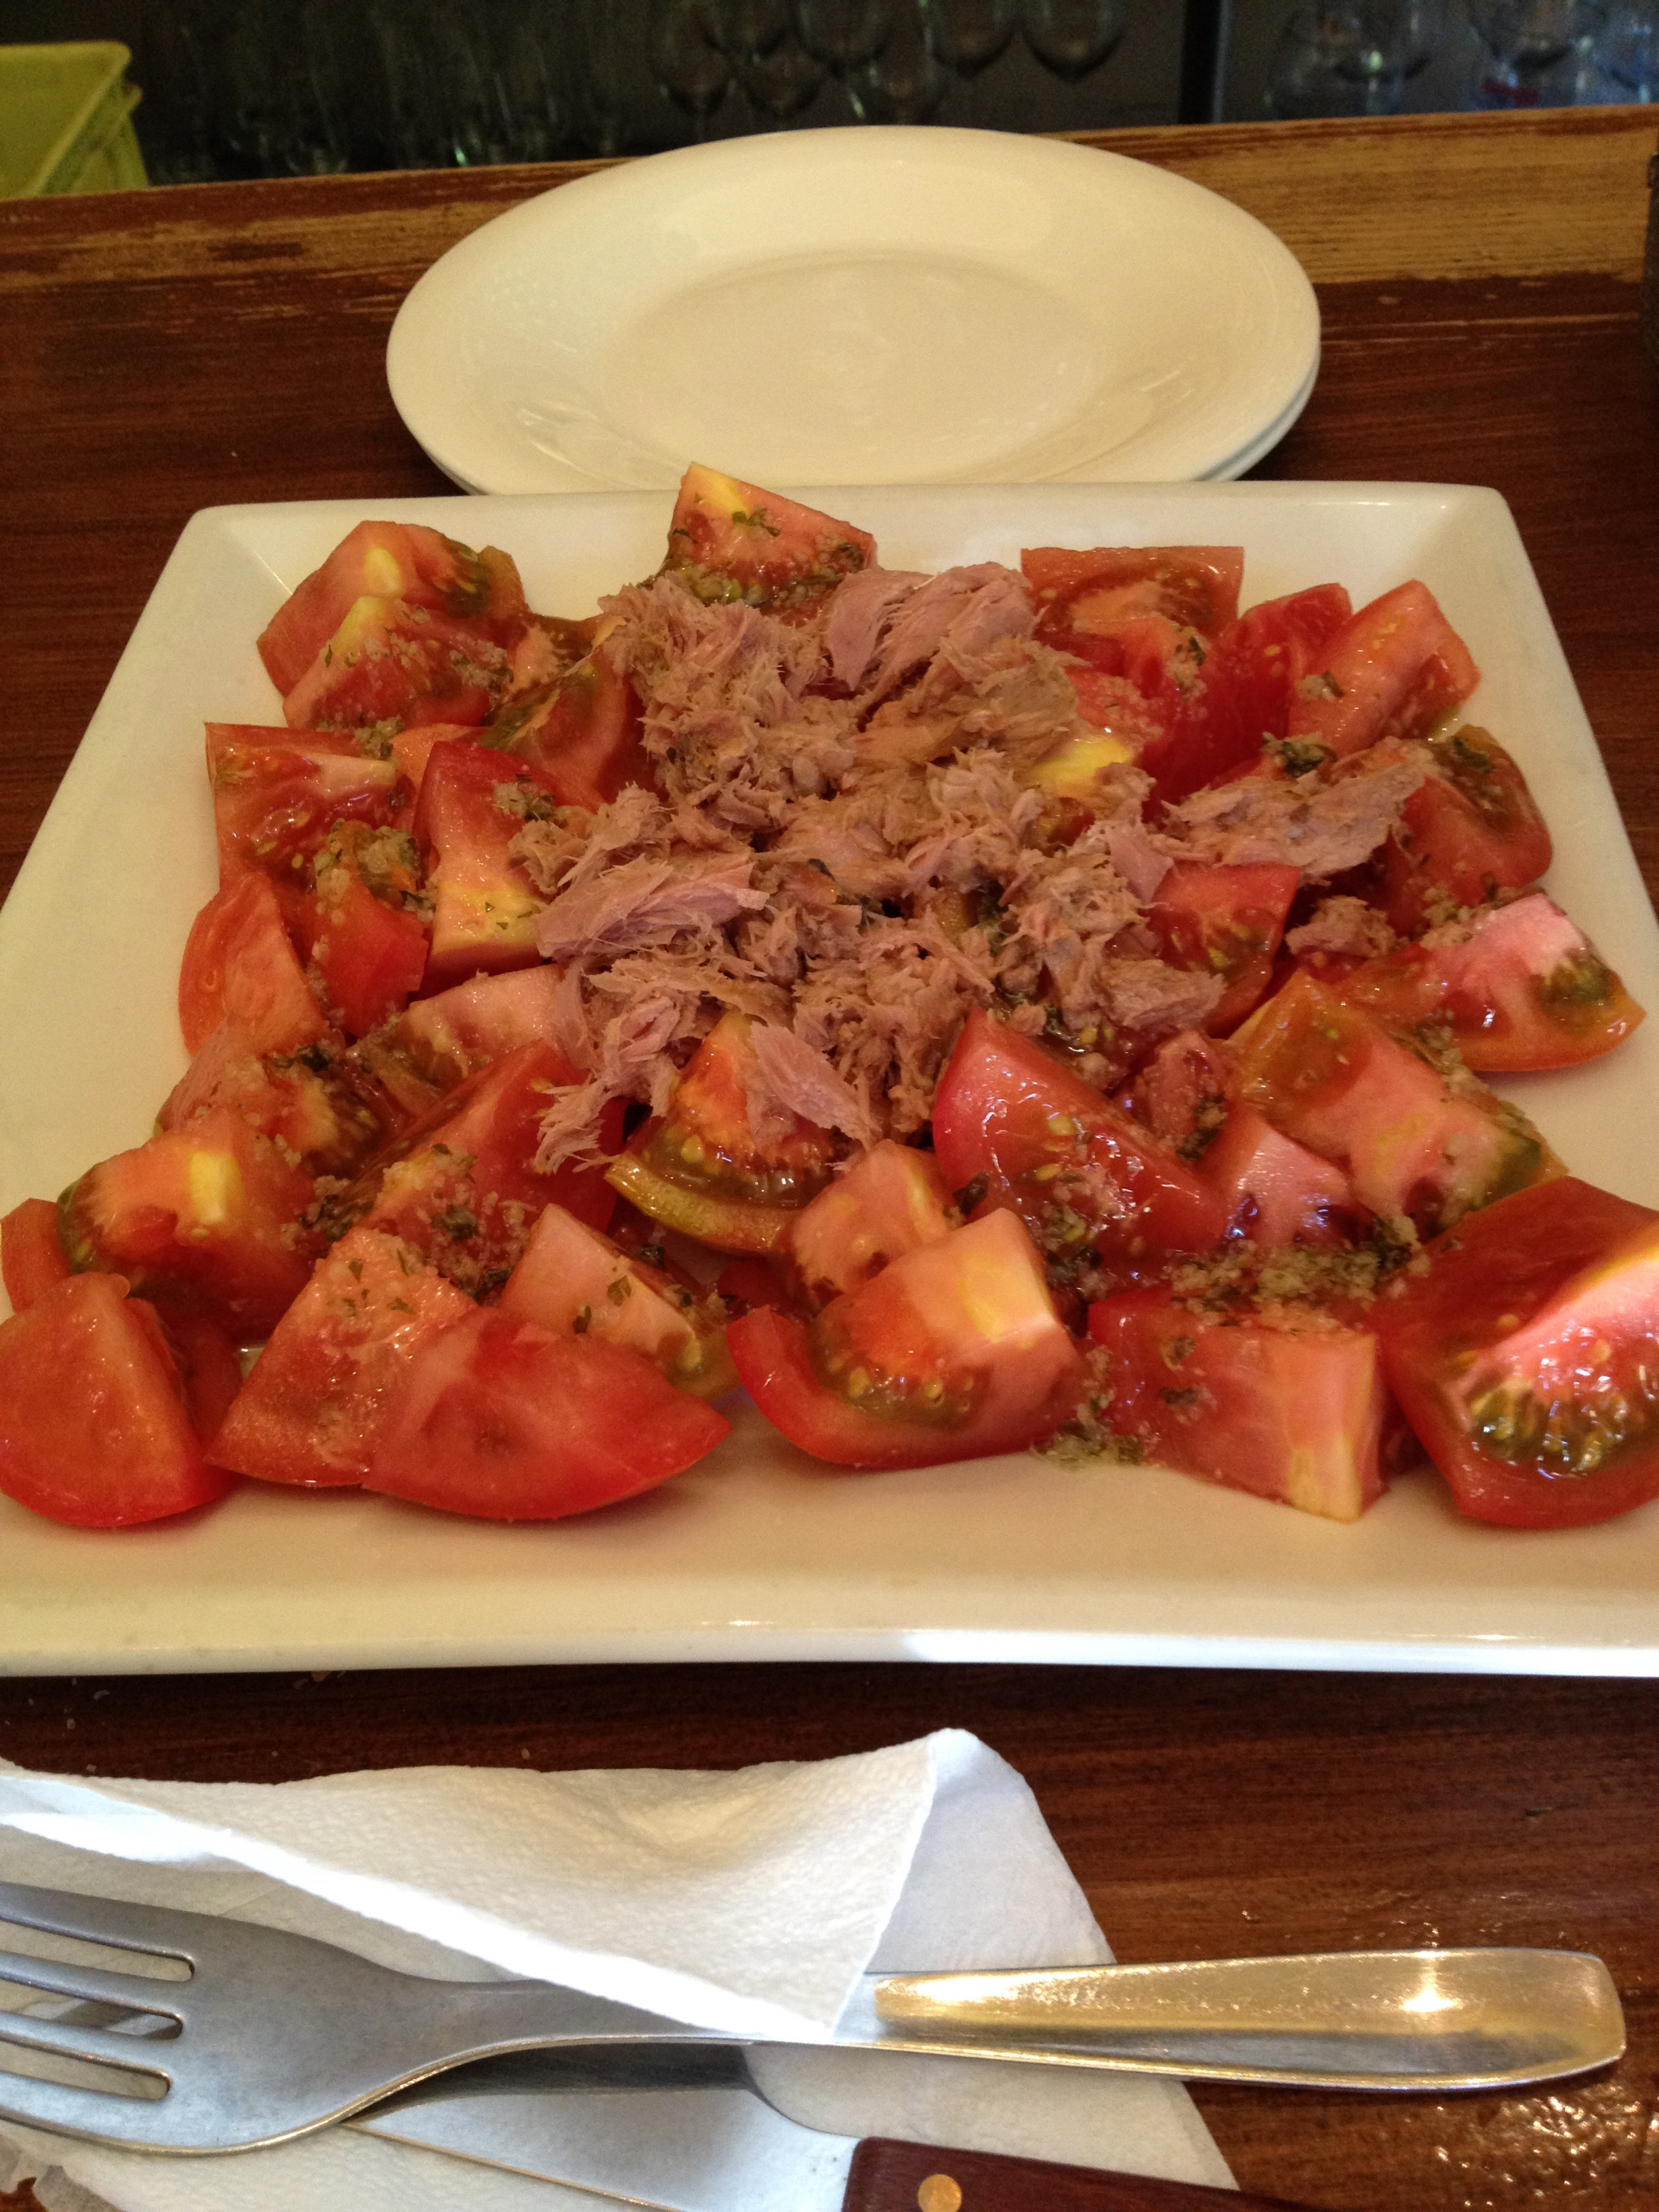 Atún y tomate  (Oil-Packed tuna and tomato salad) at Reca in Plaza Trinidad.